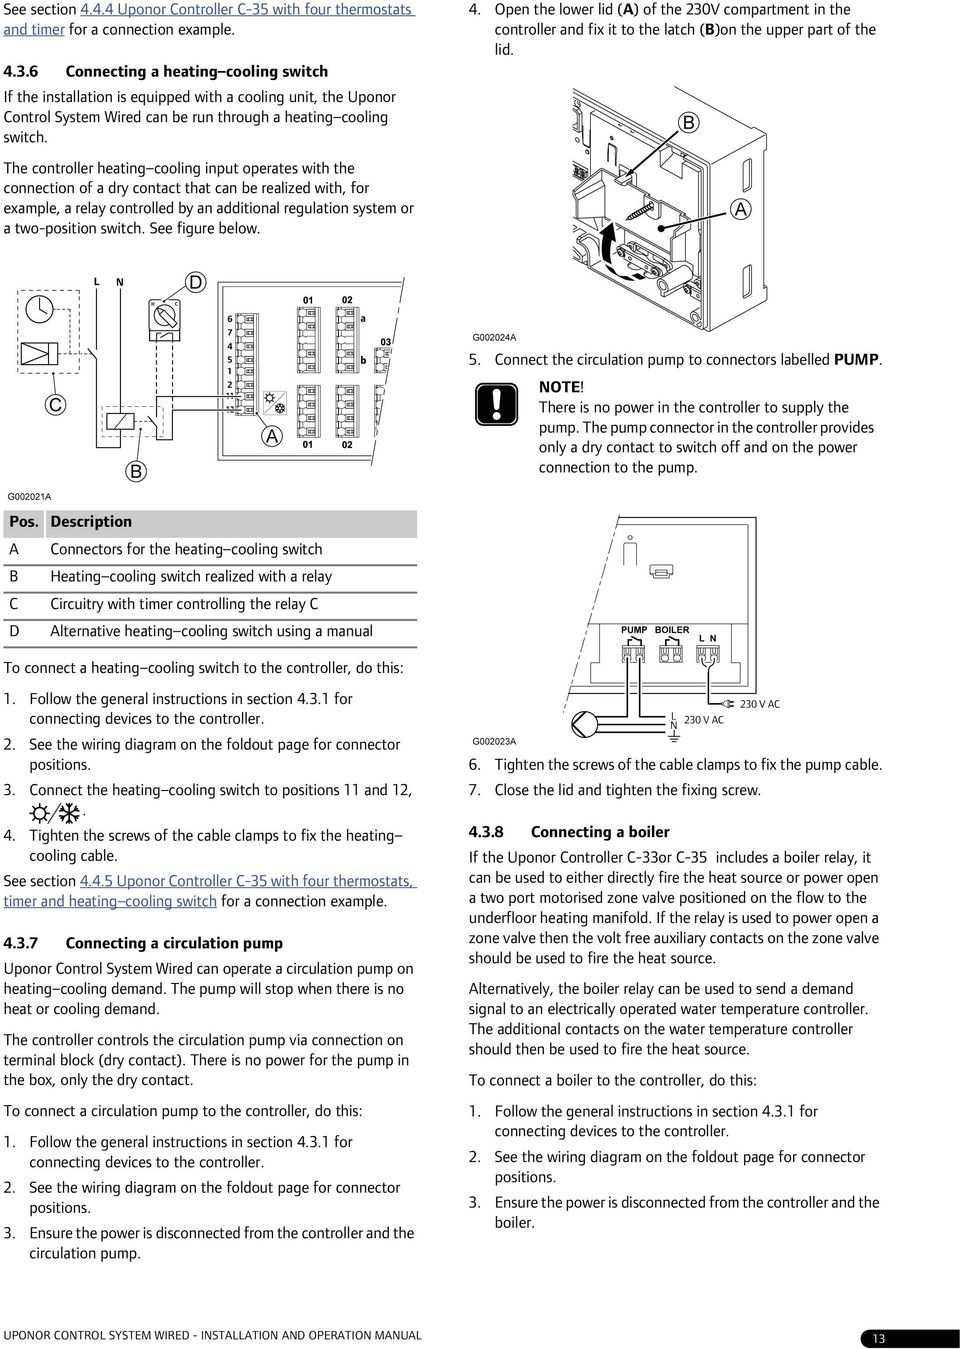 Indoor Climate Uponor Control System Wired Installation And Heating Cooling Thermostat Wiring Diagram 6 Connecting A Switch If The Is Equipped With Unit